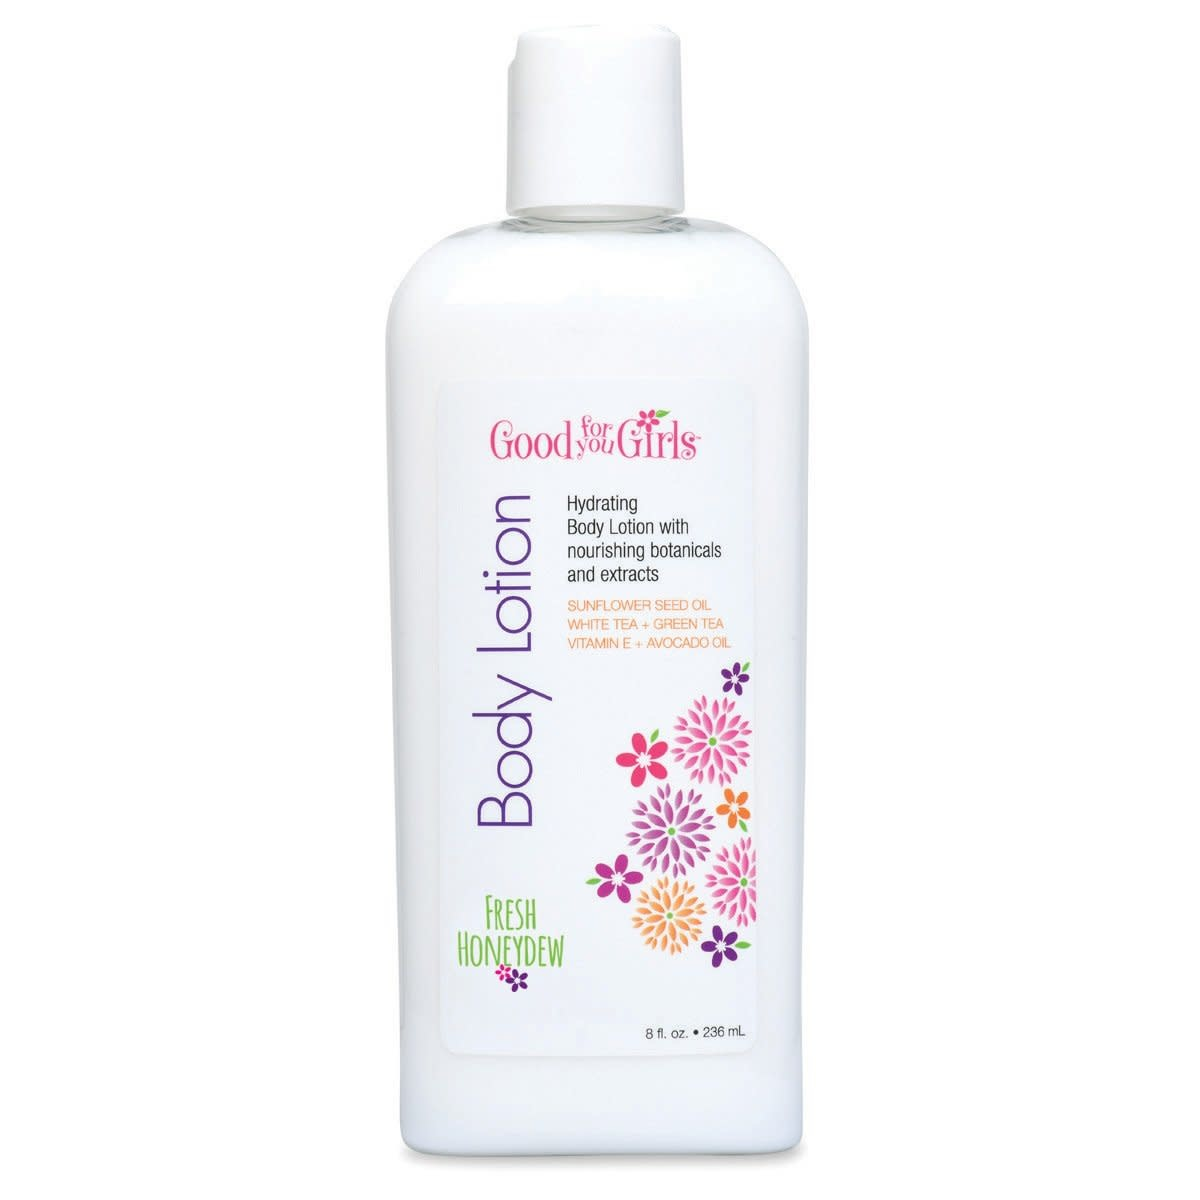 Good For You Girls Body Lotion - Honeydew